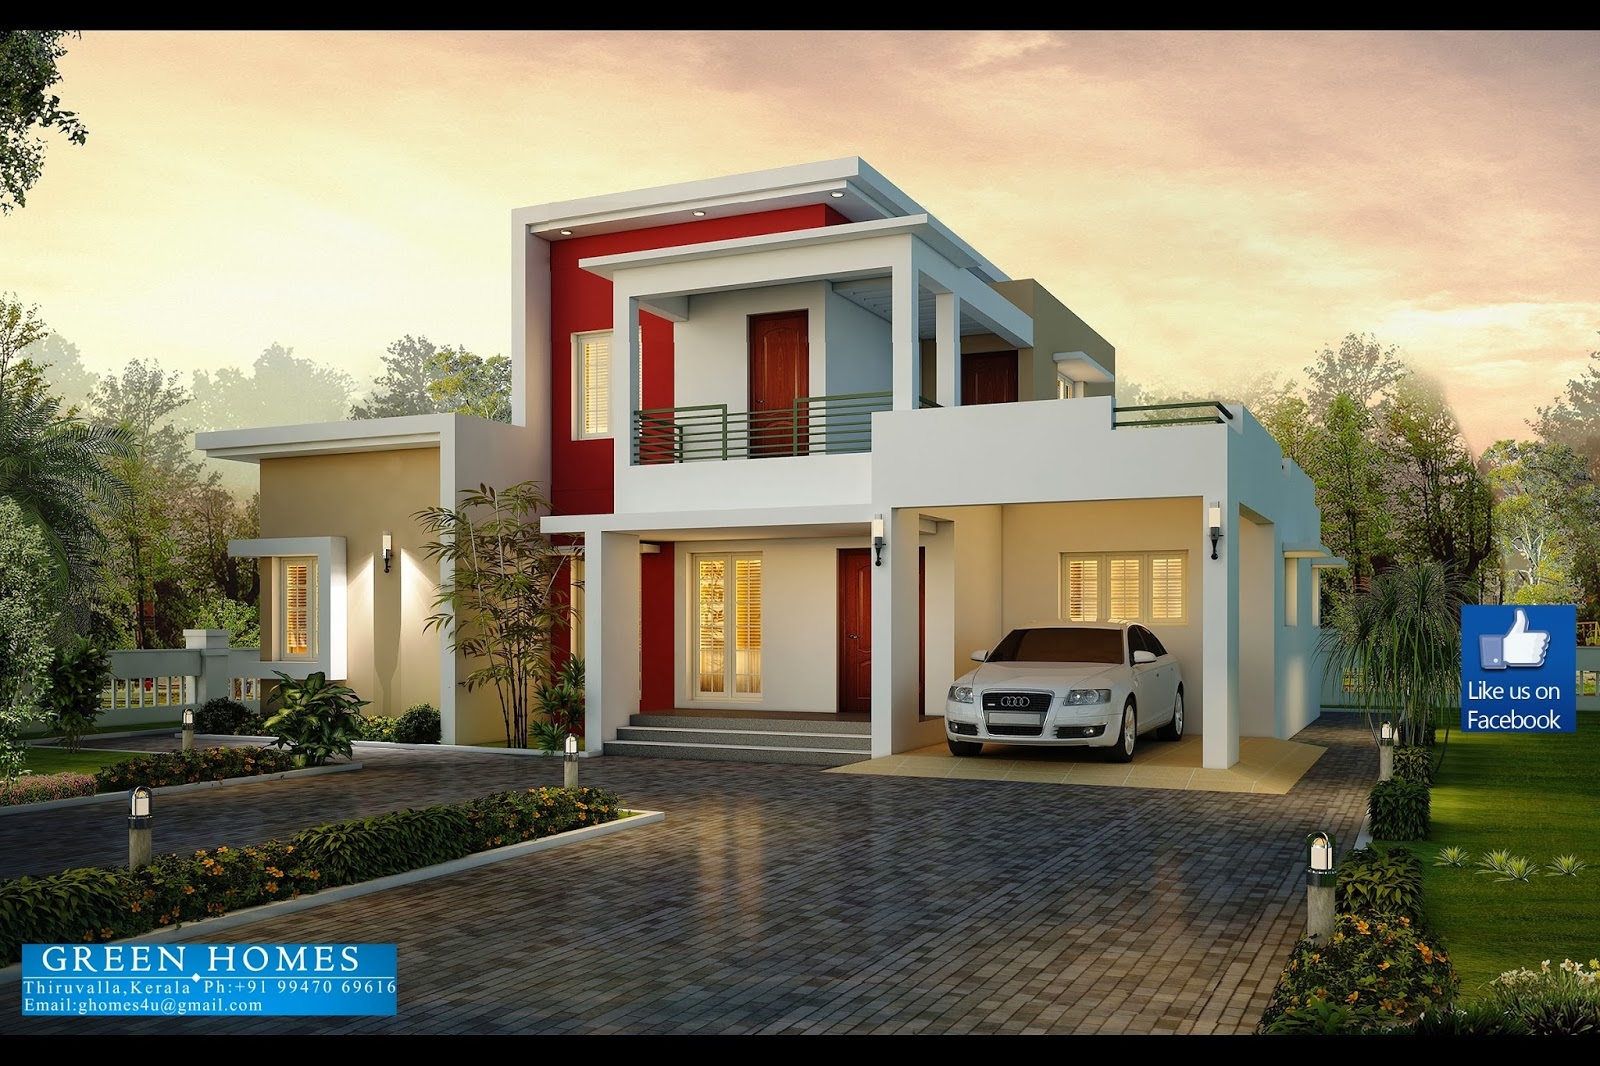 Green homes awesome 3 bedroom modern house design for Home design ideas facebook